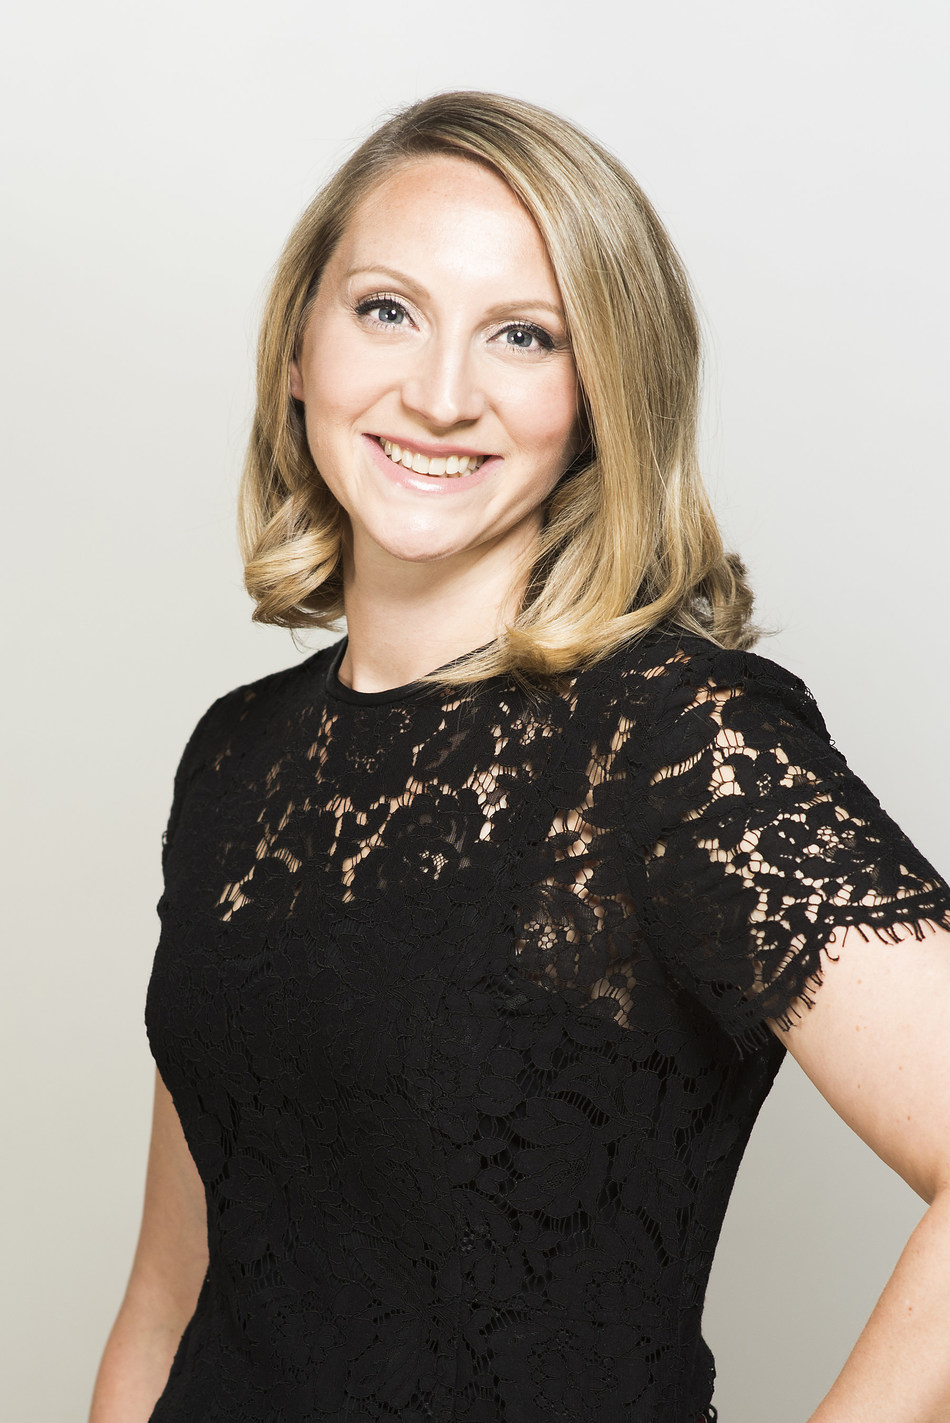 Lydia Seifert, Vice President, General Manager of Saks Fifth Avenue Calgary